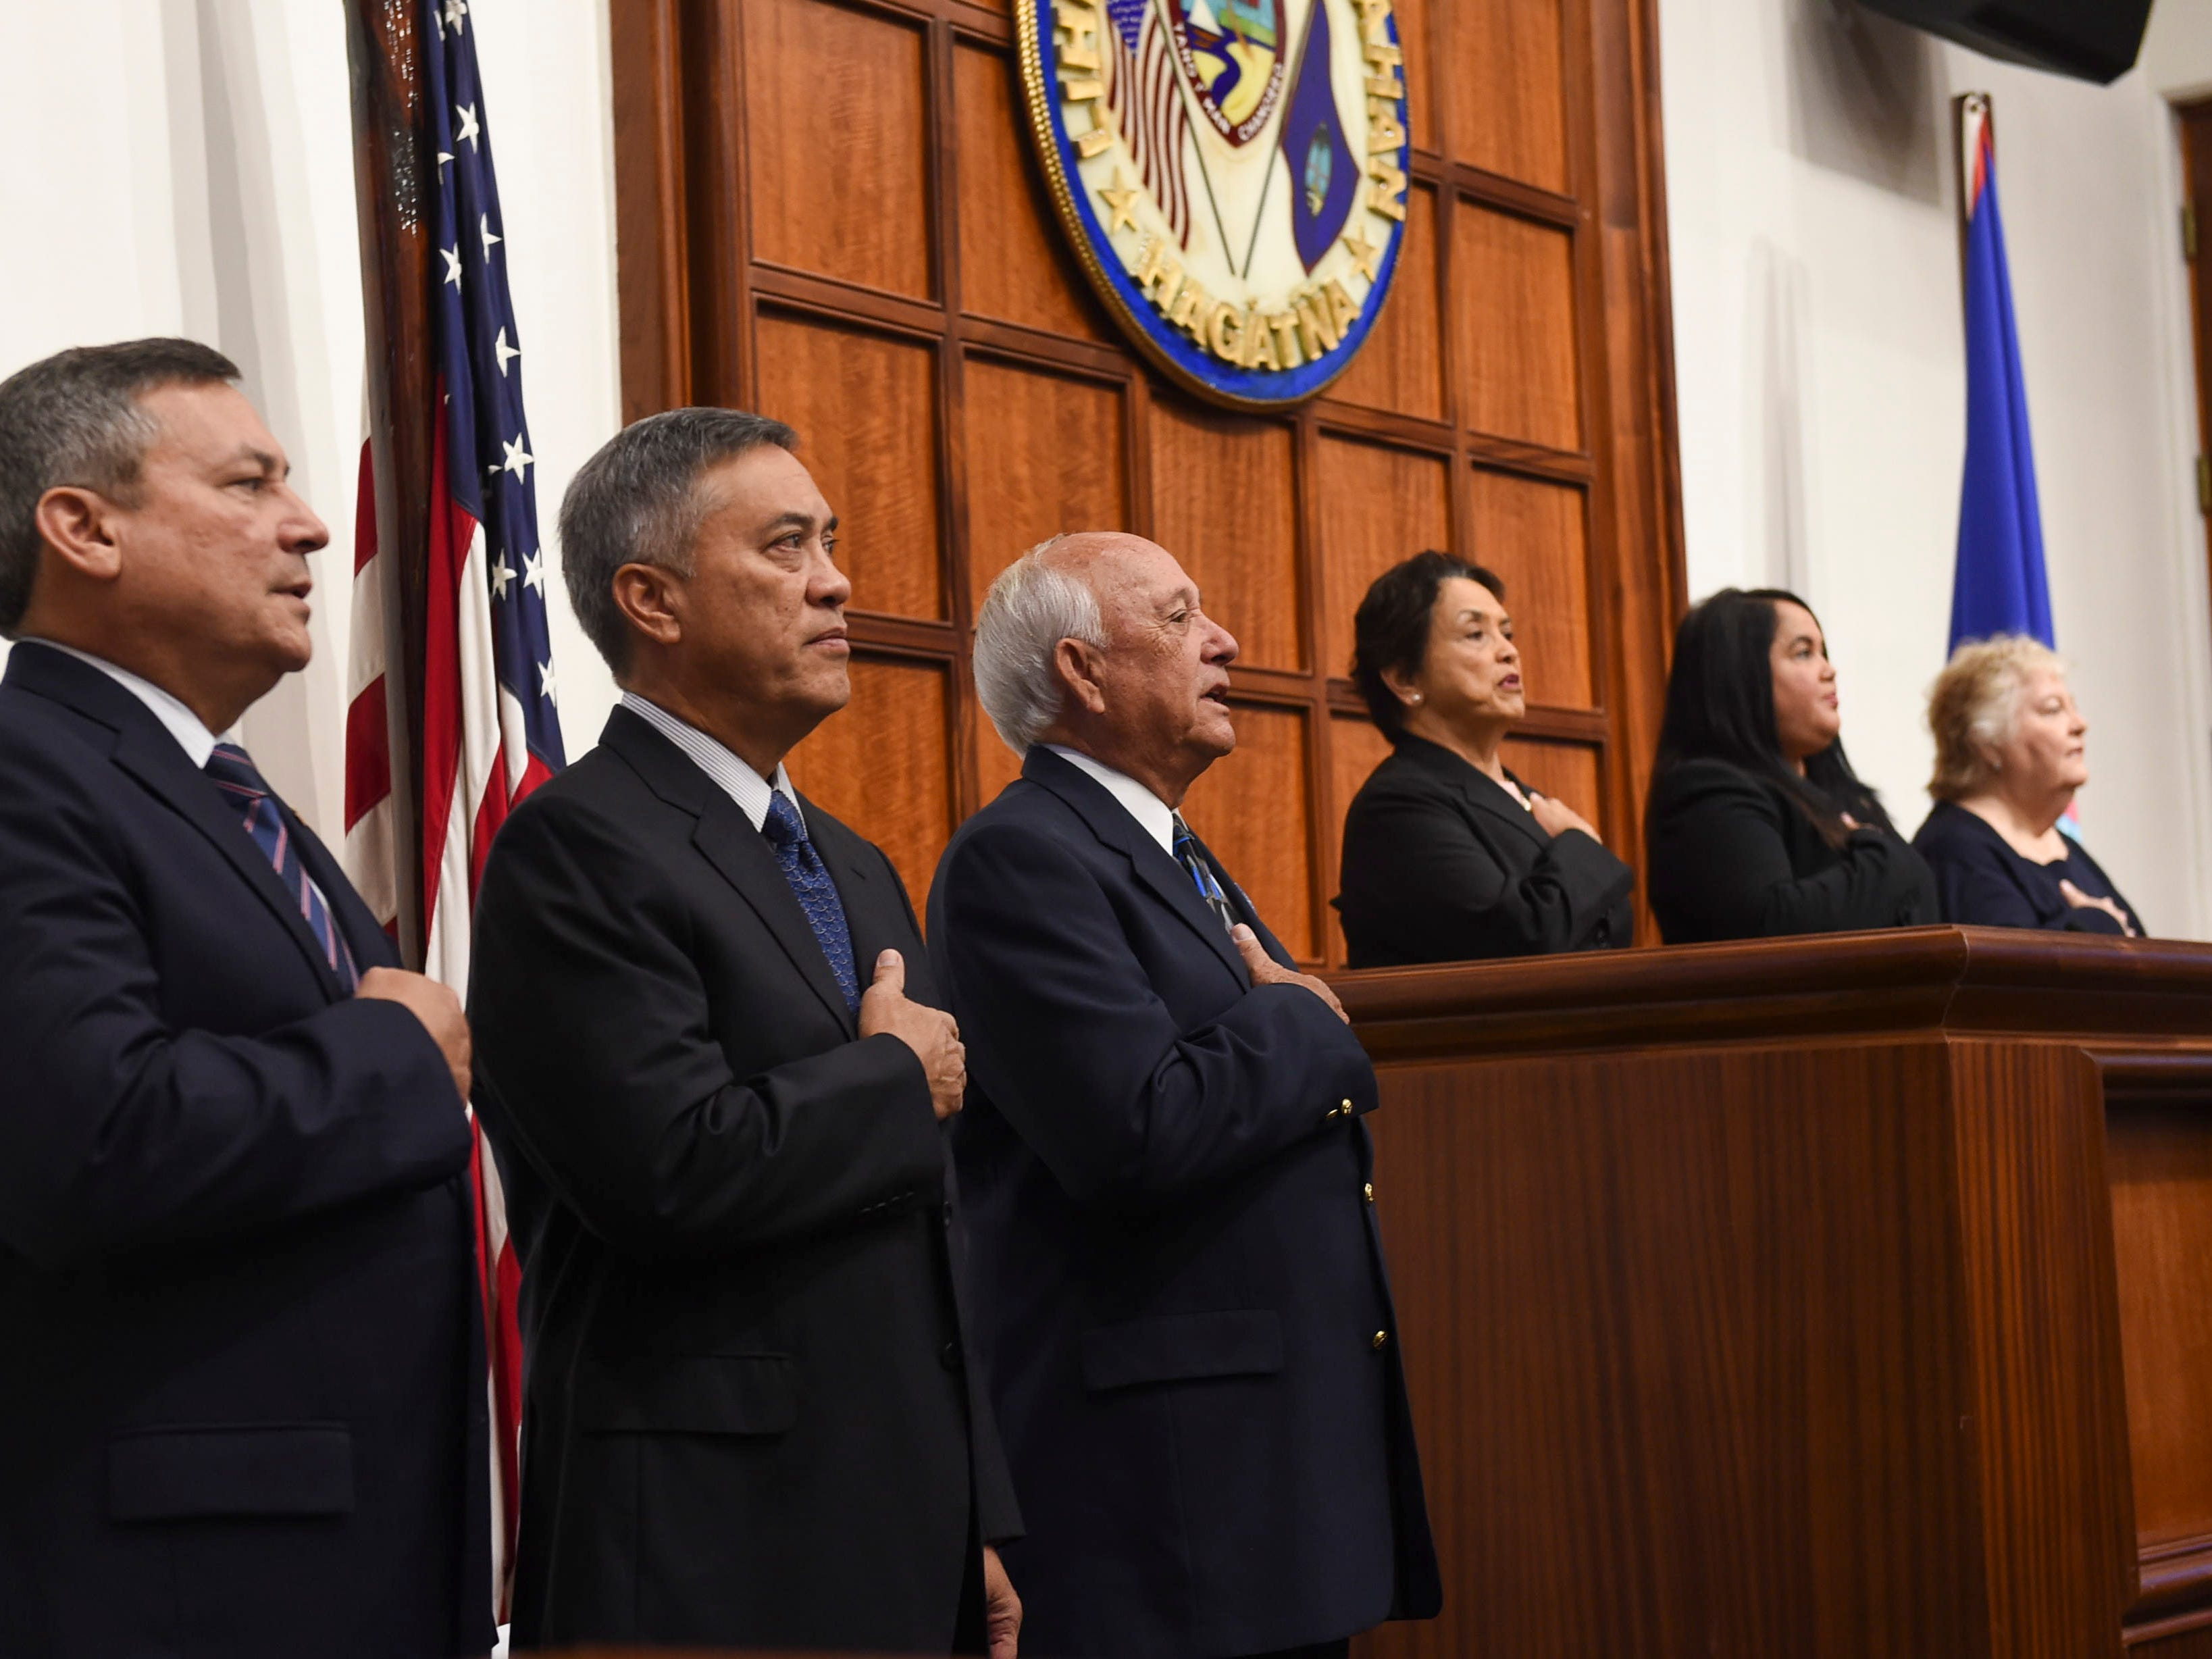 "Dignitaries stand at attention for the national anthem during the state memorial service of former Piti Mayor Vicente ""Ben"" Gumataotao, at the Guam Congress Building on Jan. 12, 2019. From left: Former Govs. Eddie Baza Calvo, Felix Camacho, Carl T.C. Gutierrez, Gov. Lou Leon Guerrero, Speaker Tina Muna Barnes, and Chief Justice Katherine Maraman."